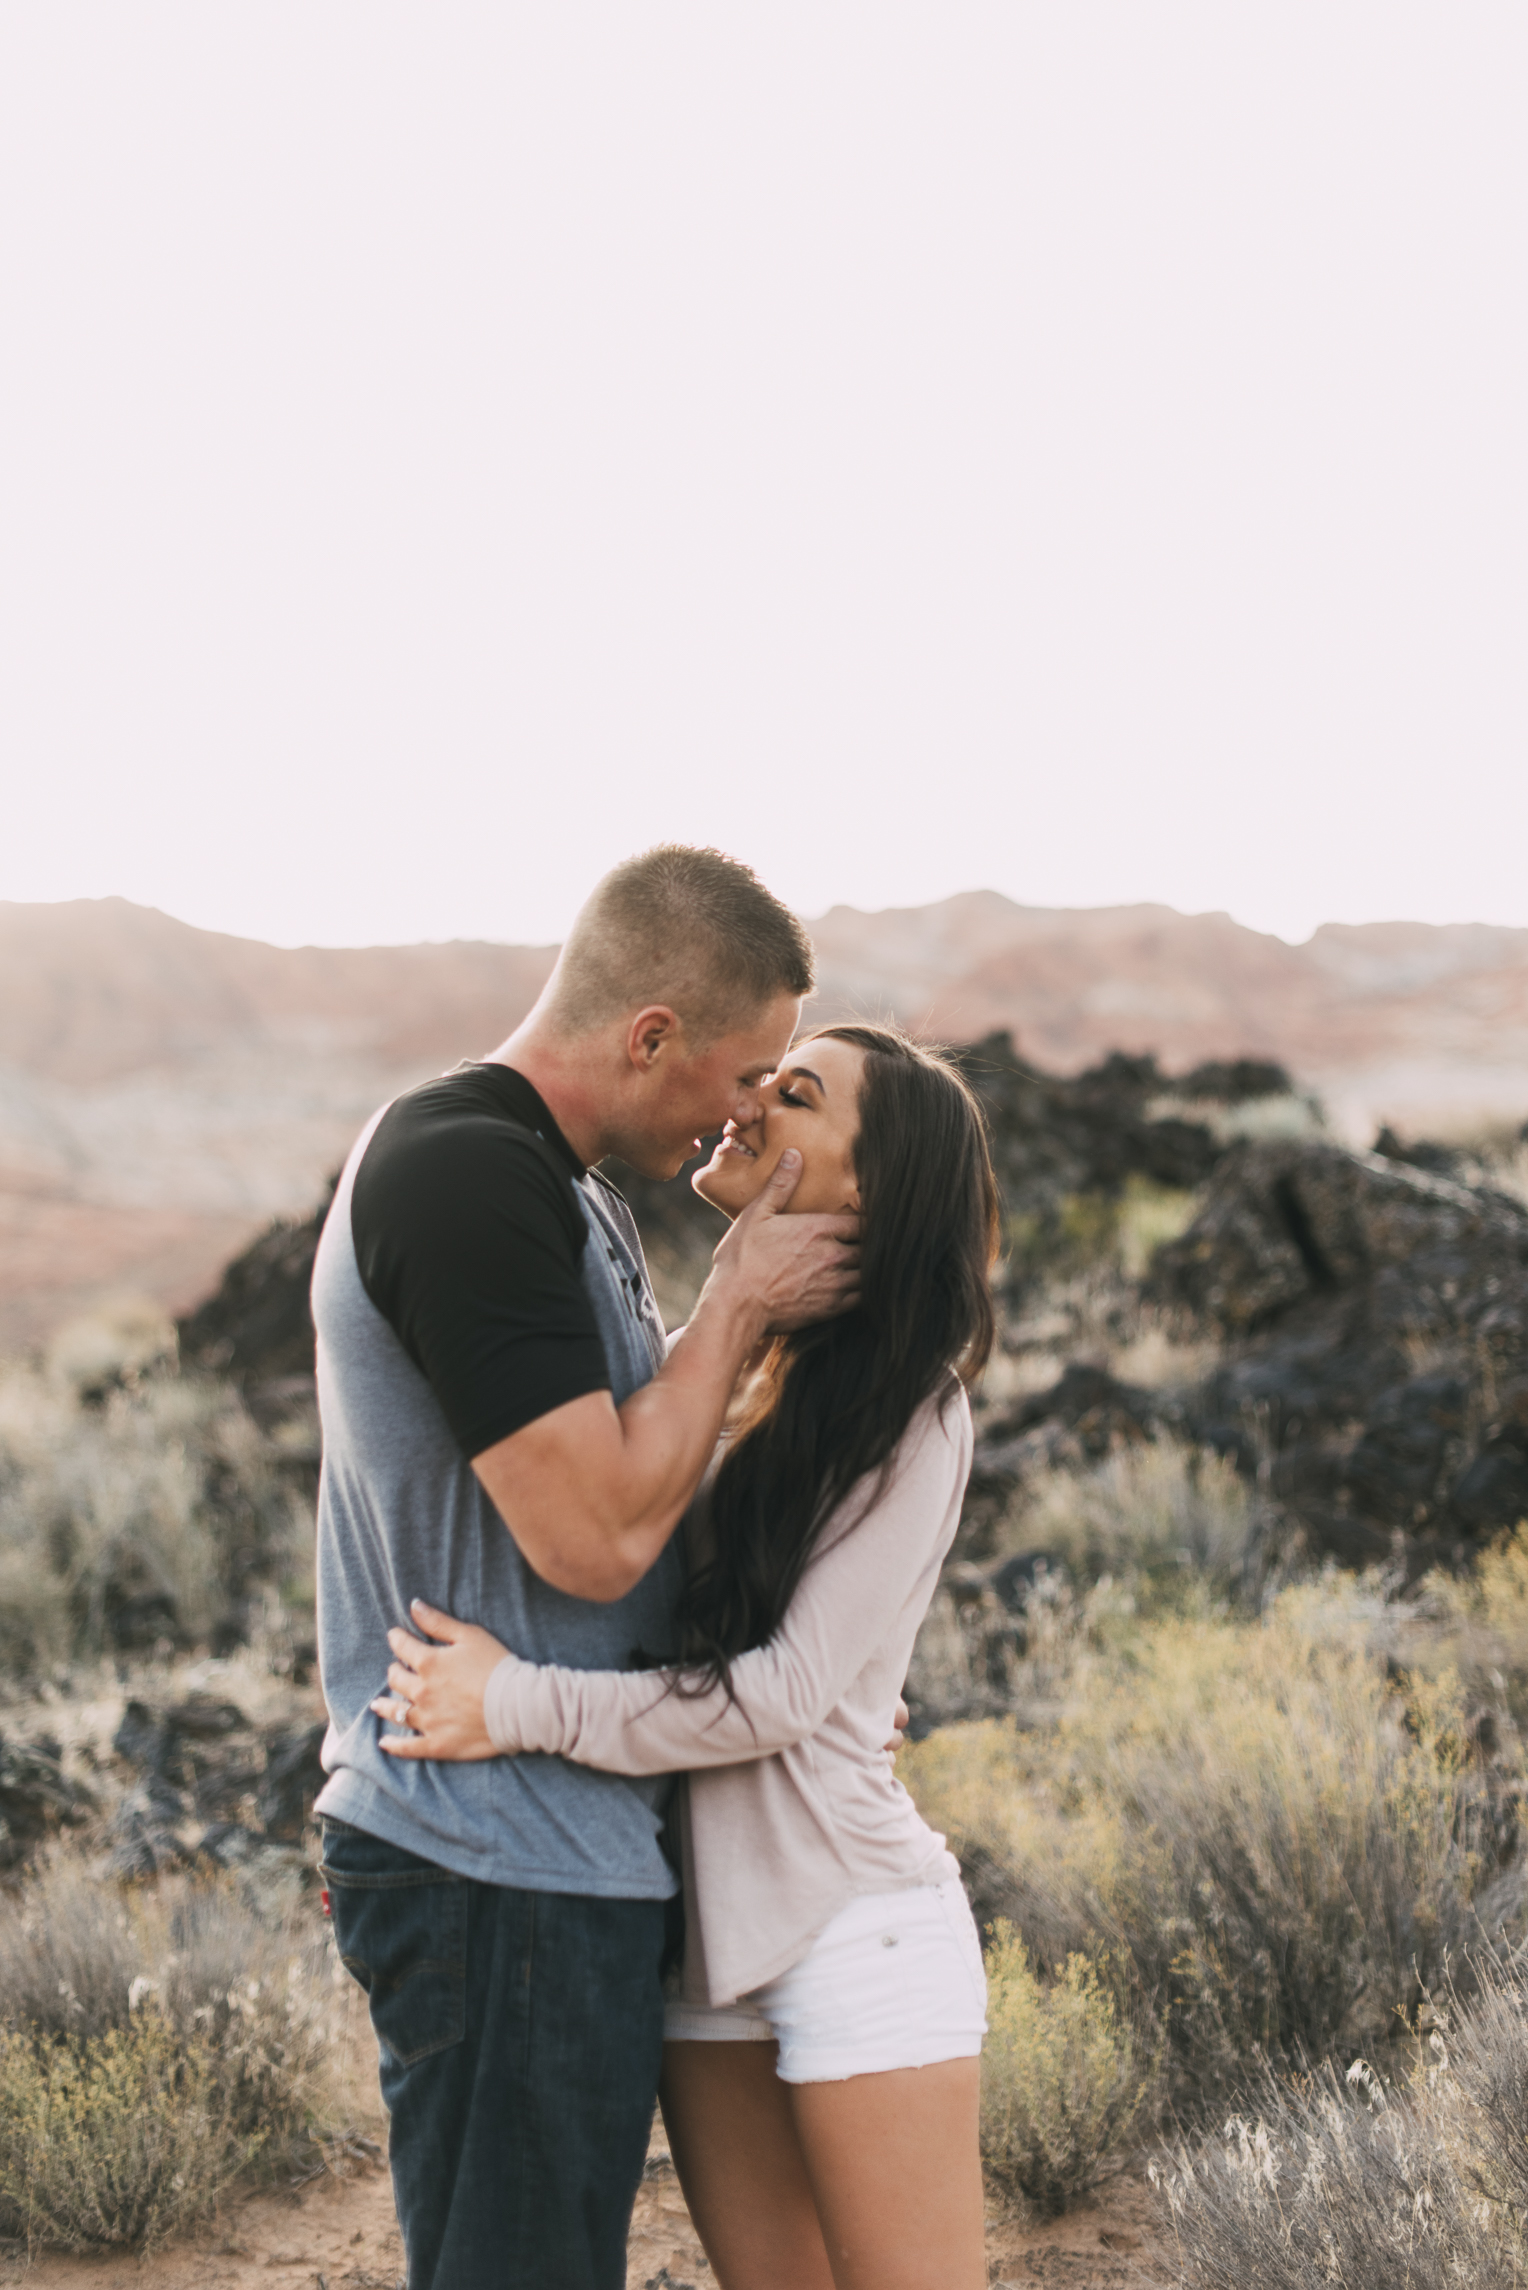 050416KELSEY & RUSTIN ENGAGEMENTS - ST. GEORGE LAS VEGAS PHOTOGRAPHER - DEBI RAE PHOTOGRAPHY-34.jpg